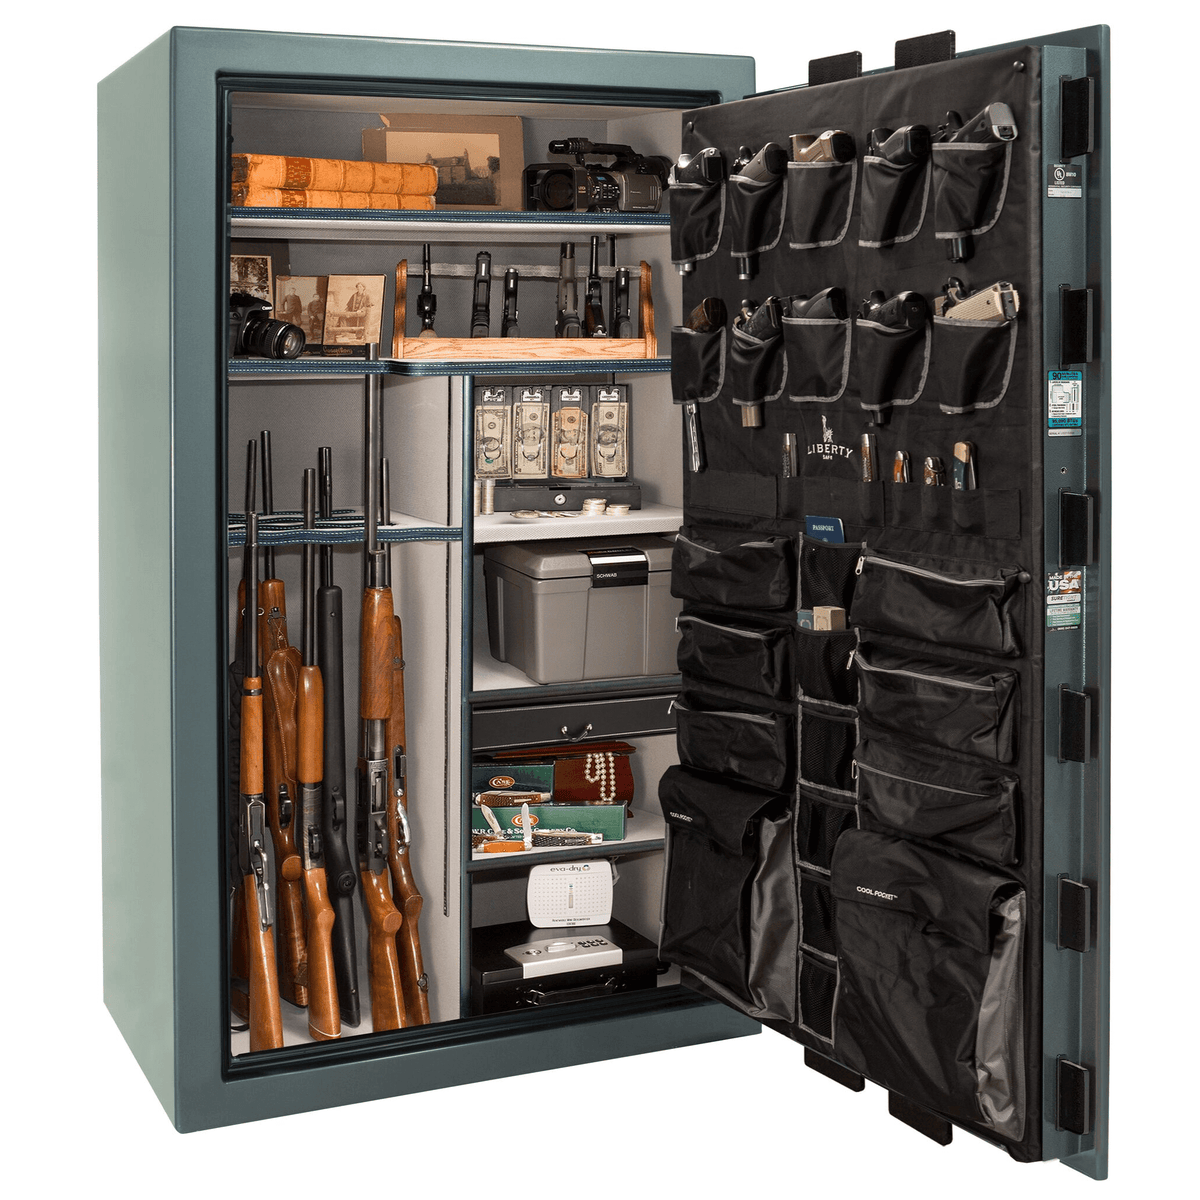 "Lincoln | 50 | Level 5 Security | 110 Minute Fire Protection | Forest Mist Gloss | Black Mechanical Lock | 72.5""(H) x 42""(W) x 32""(D)"